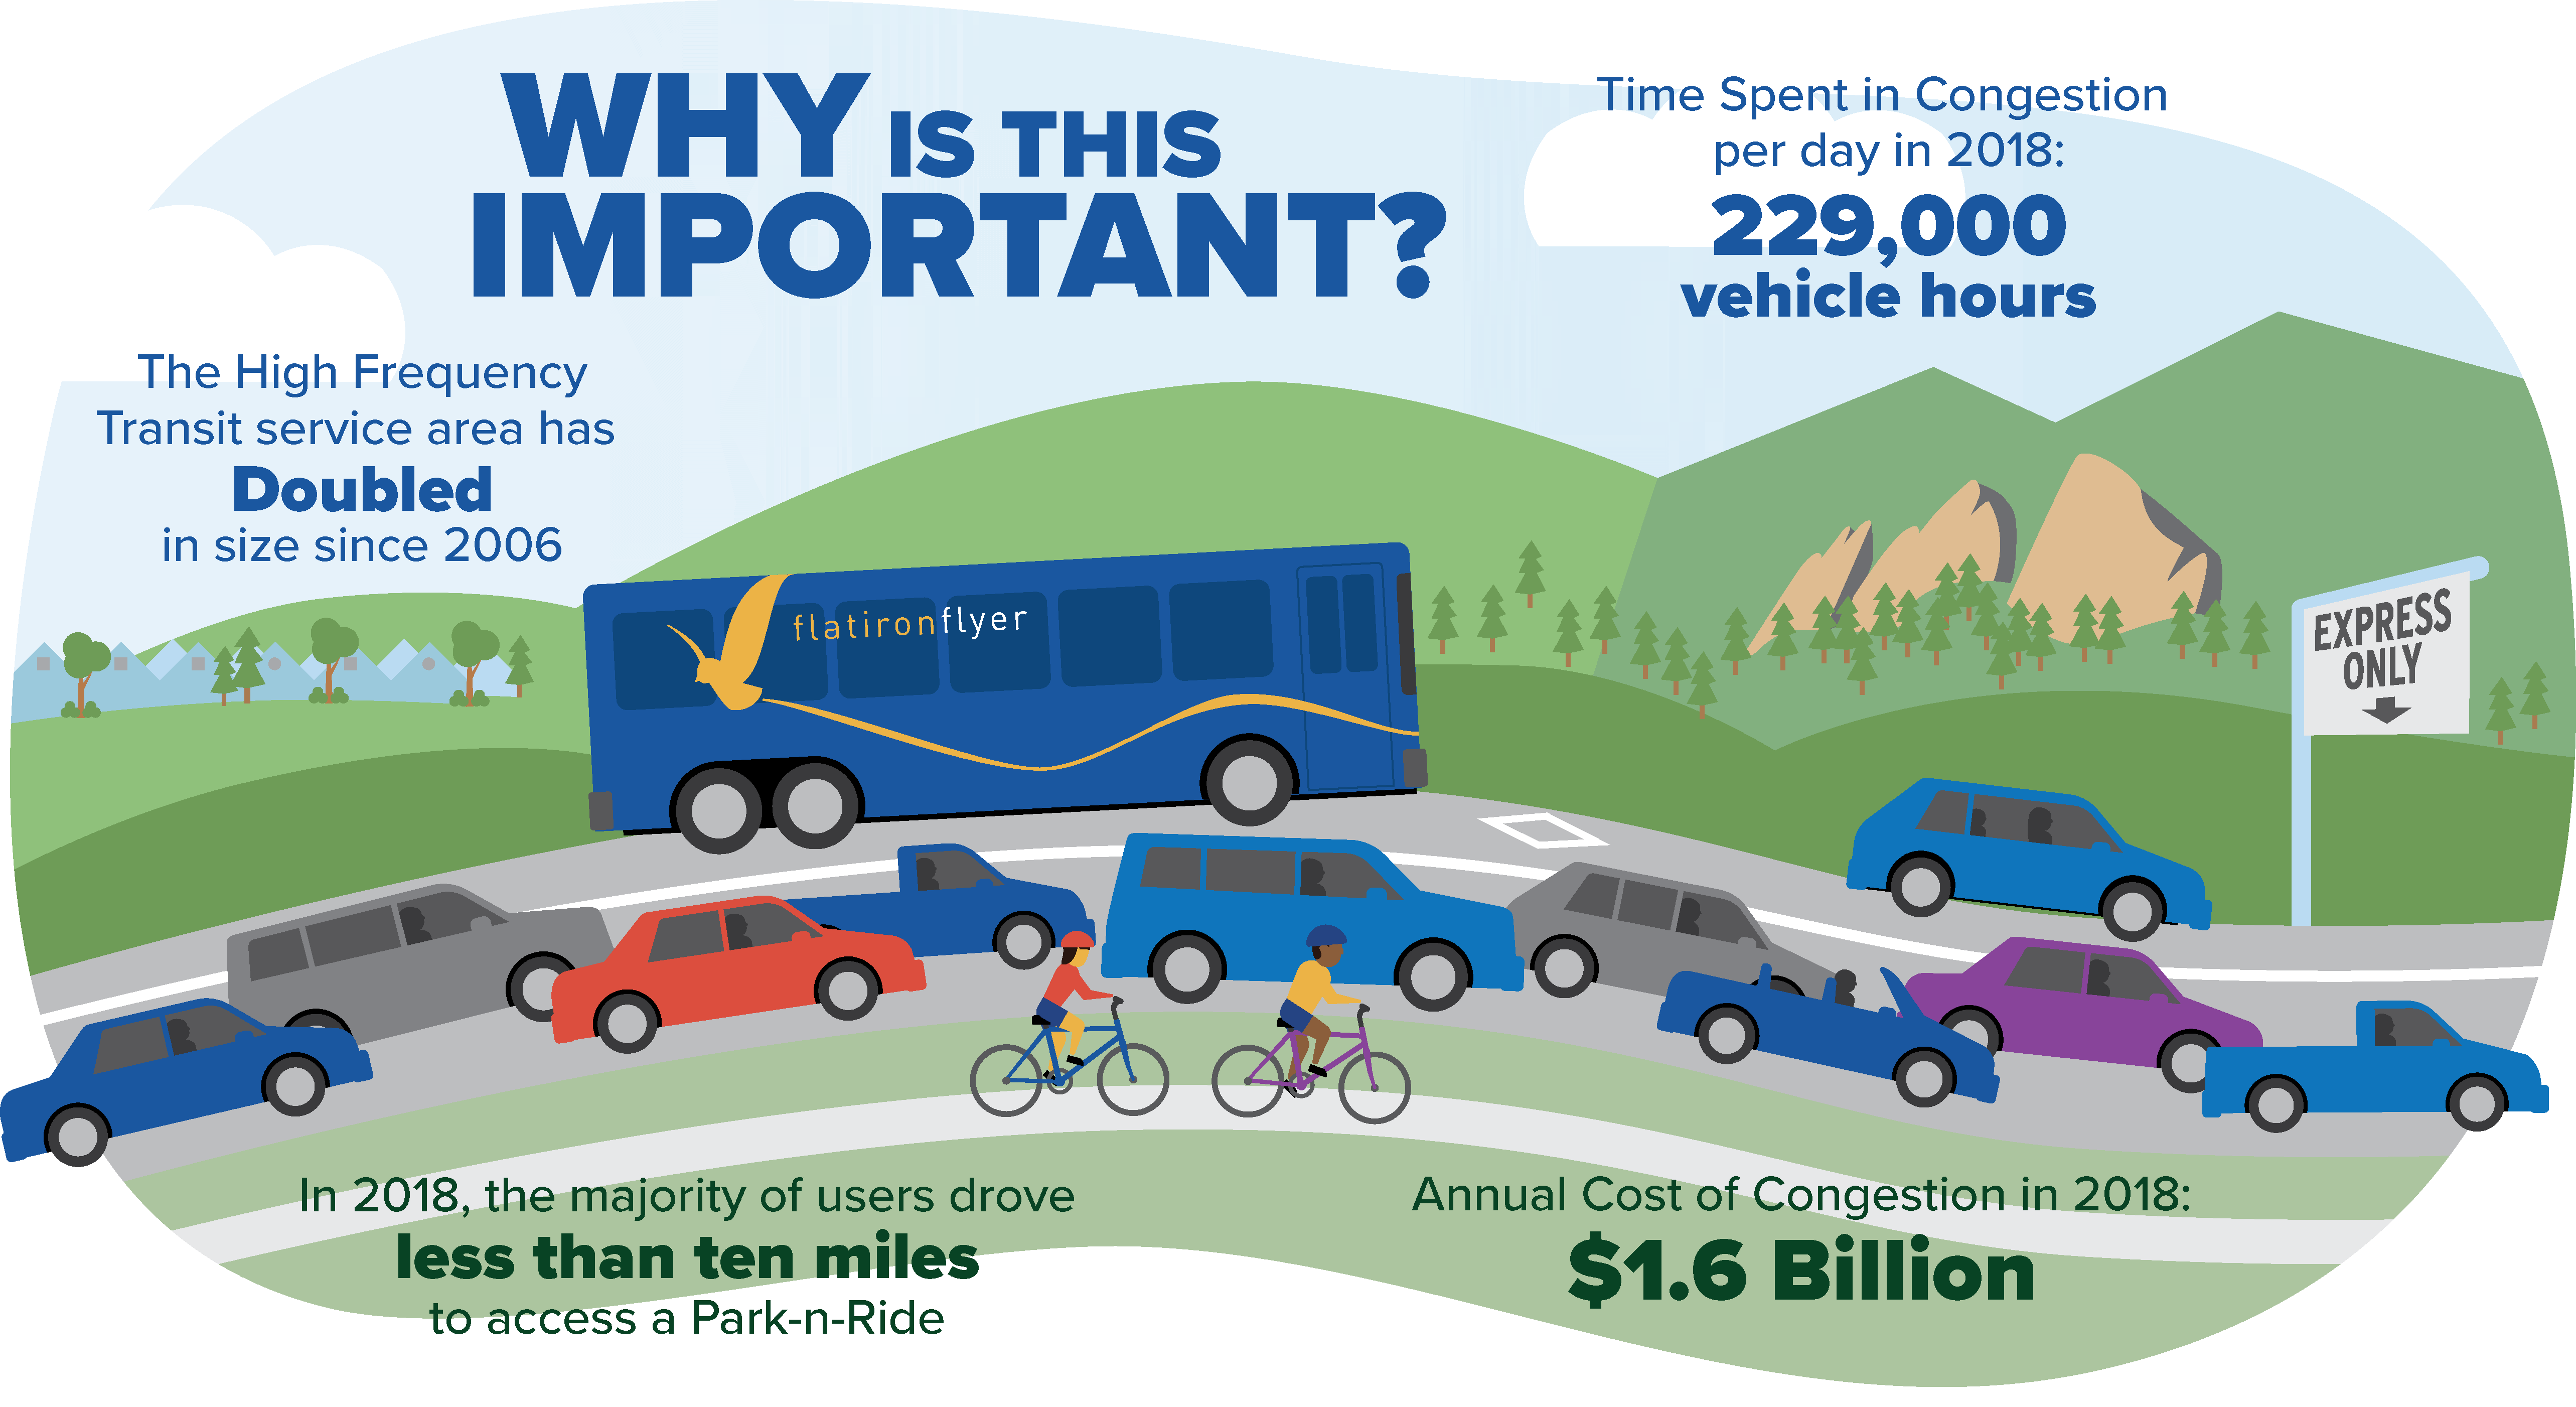 Infographic: The total time spend in congestion per day was 229,000 vehicle hours per day in 2018.  The high frequency transit service area has doubled in size since 2006. In 2018, the majority of commuters drove less than ten miles to access a park and ride. The annual cost of congestion in 2018 was $1.6 billion.